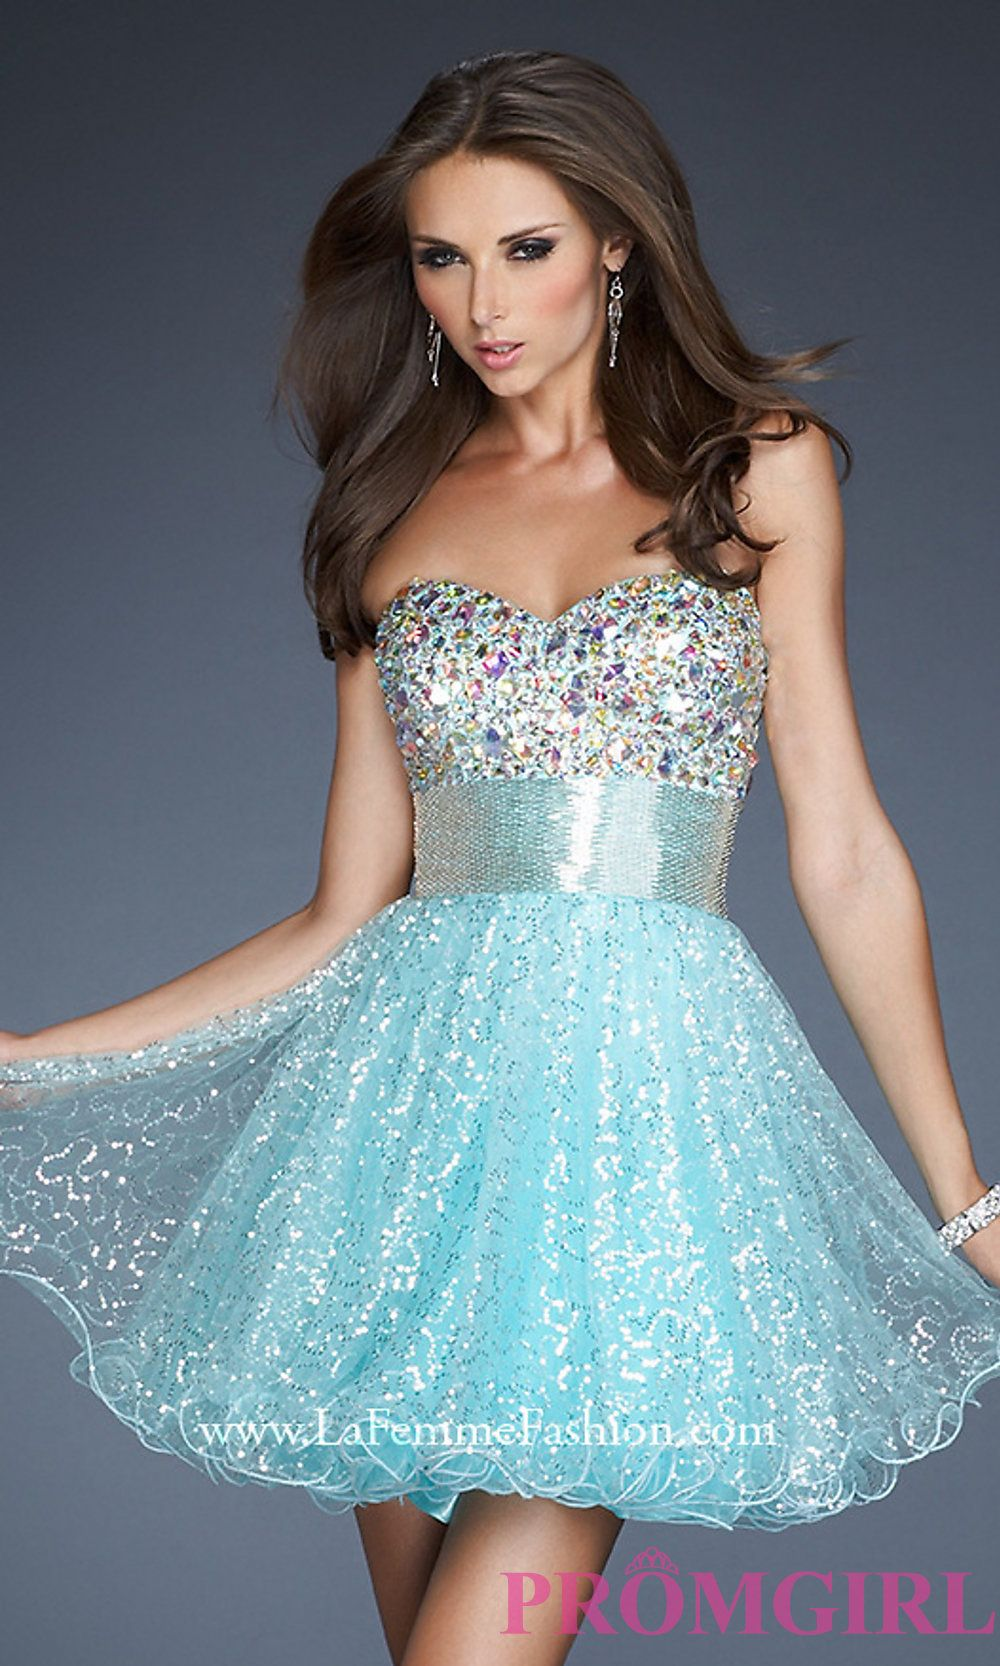 swatch_attribute_399240 | Mi Jari | Pinterest | Homecoming dresses ...